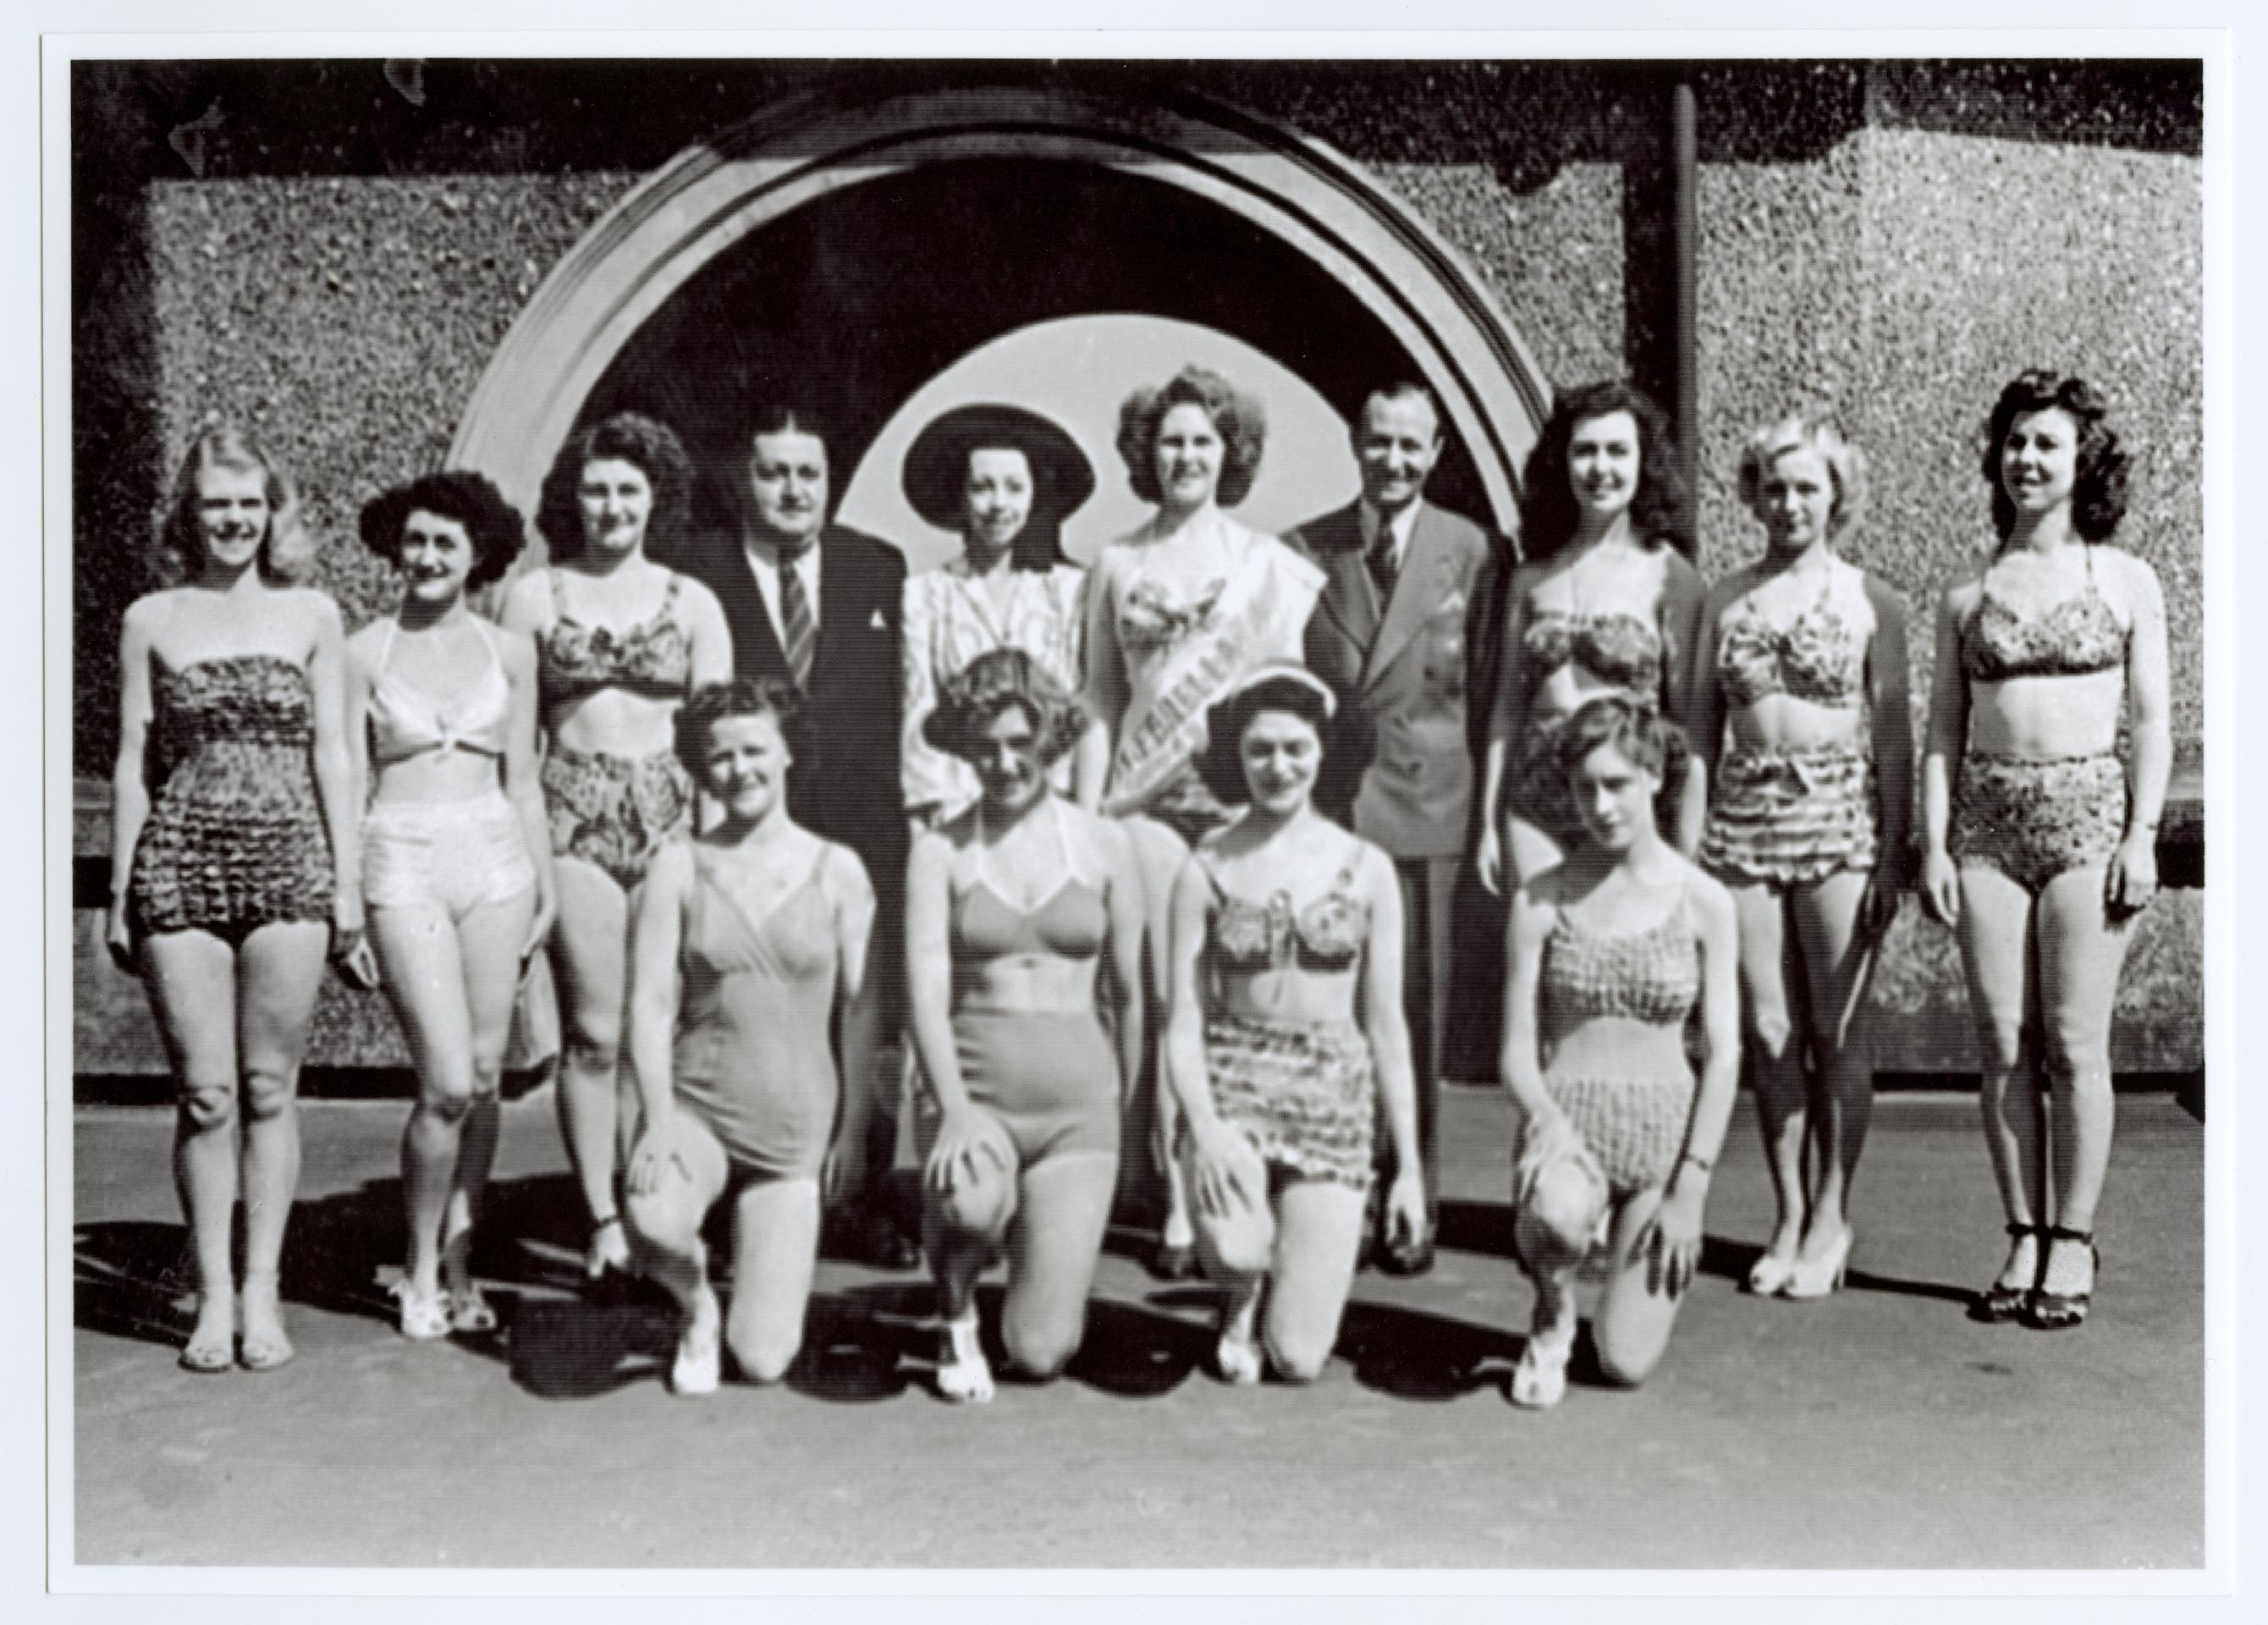 Black And White Man >> Entrants at the 1949 Miss Isle of Man Competition - Photographic Archive - iMuseum